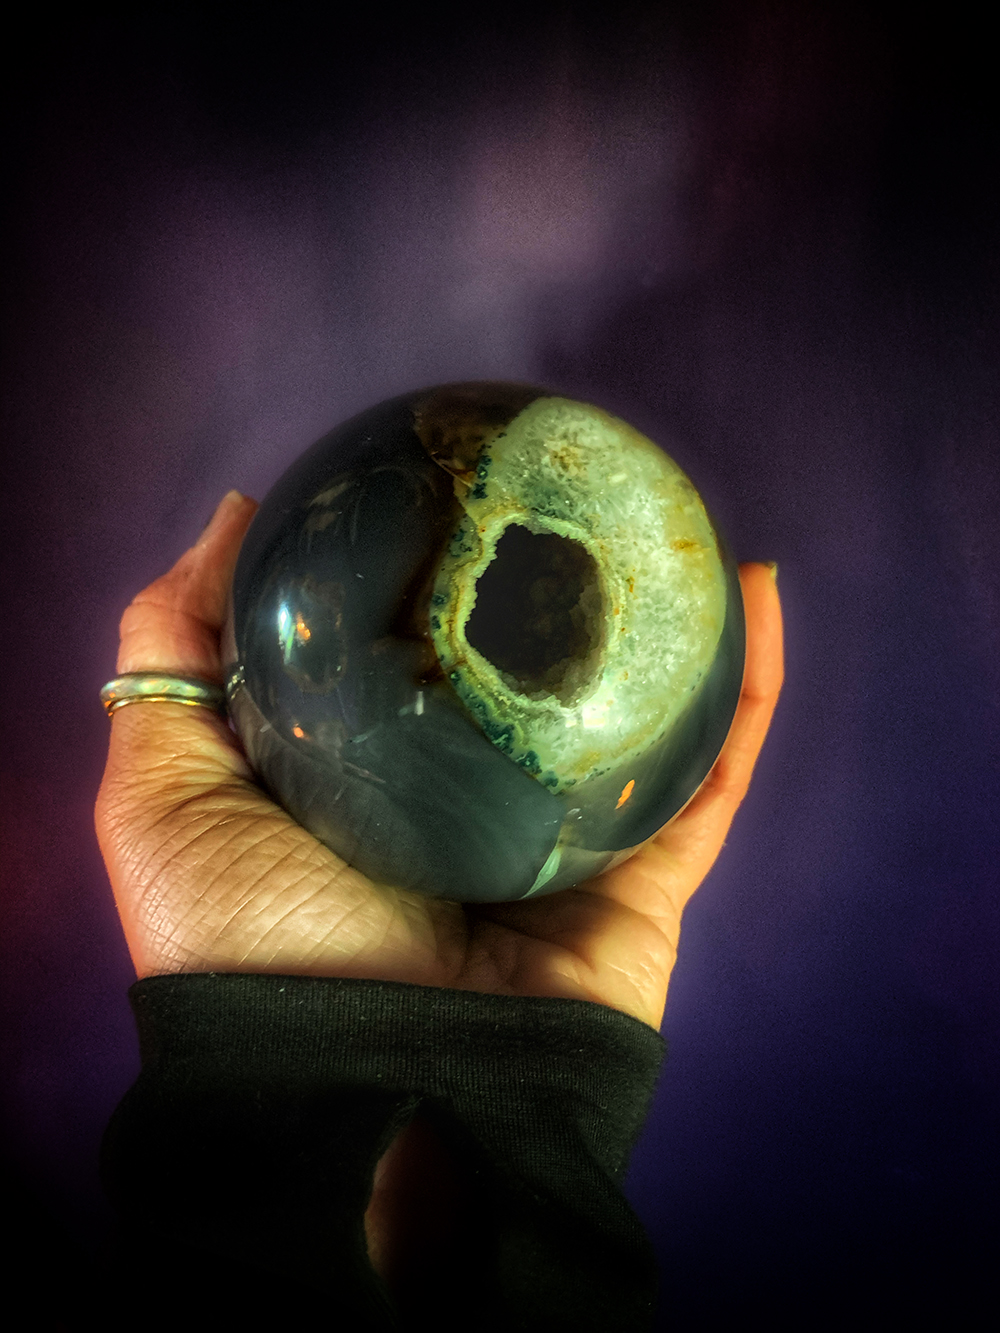 The Cats Eye Druzy Agate Geode Sphere & Vintage Stand